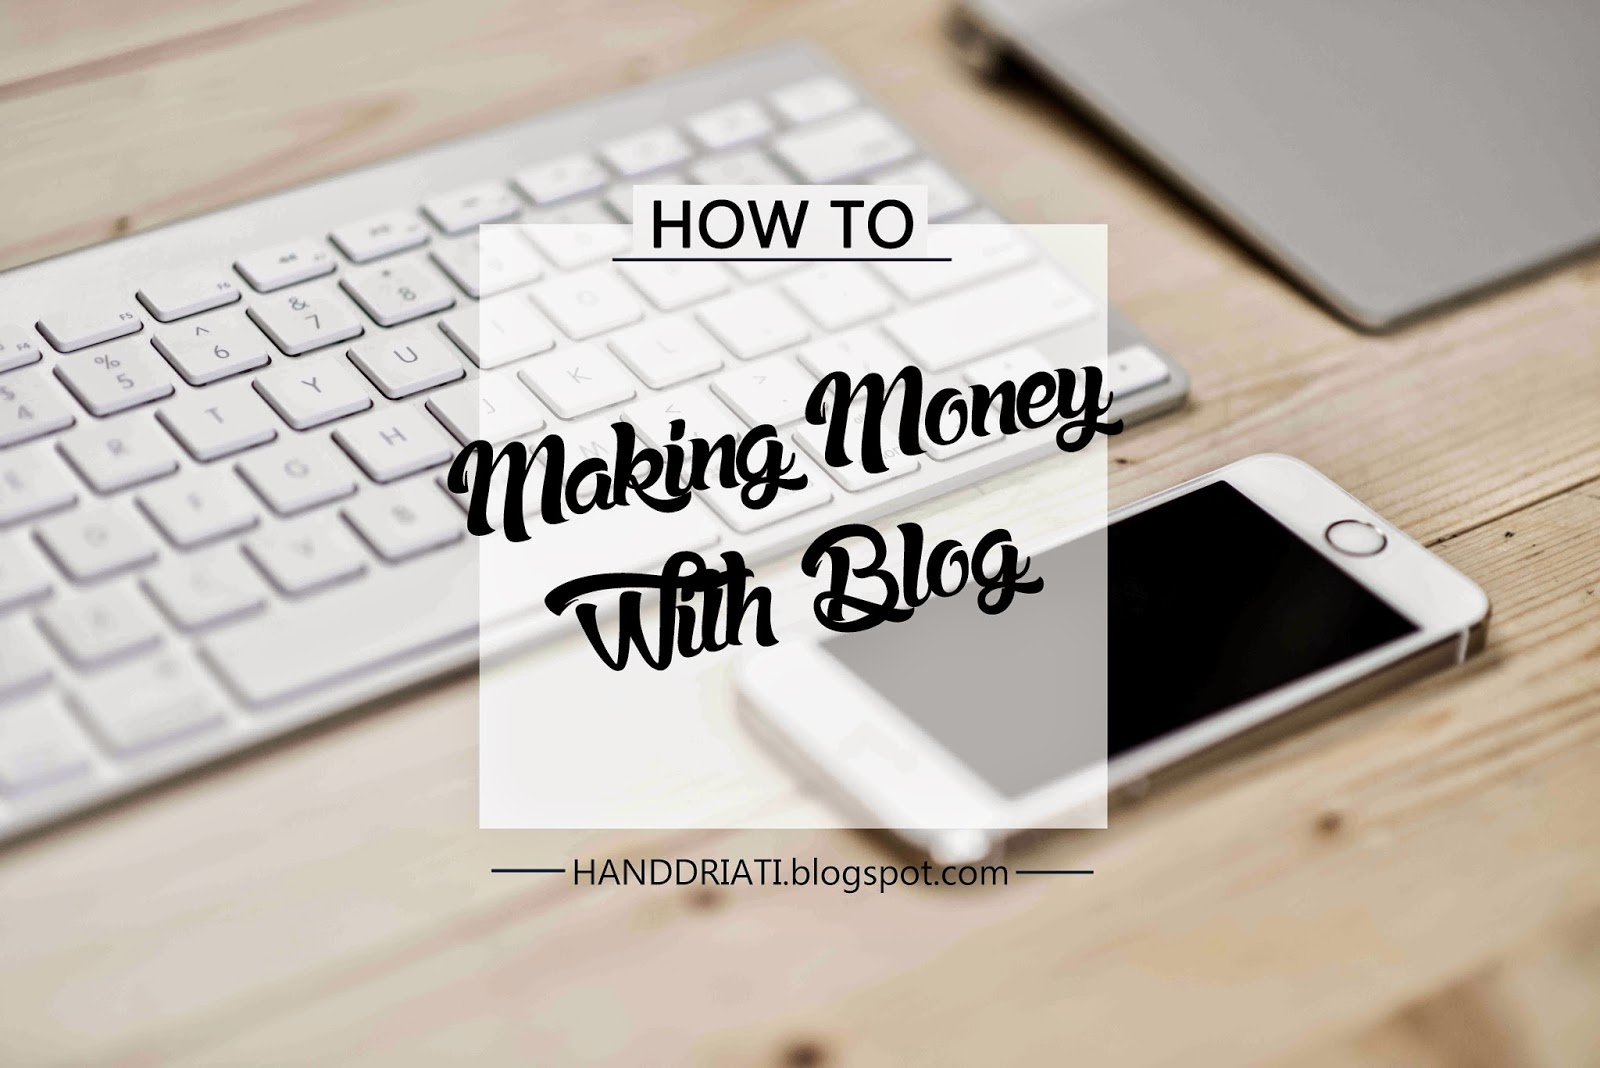 Making Money With Blog